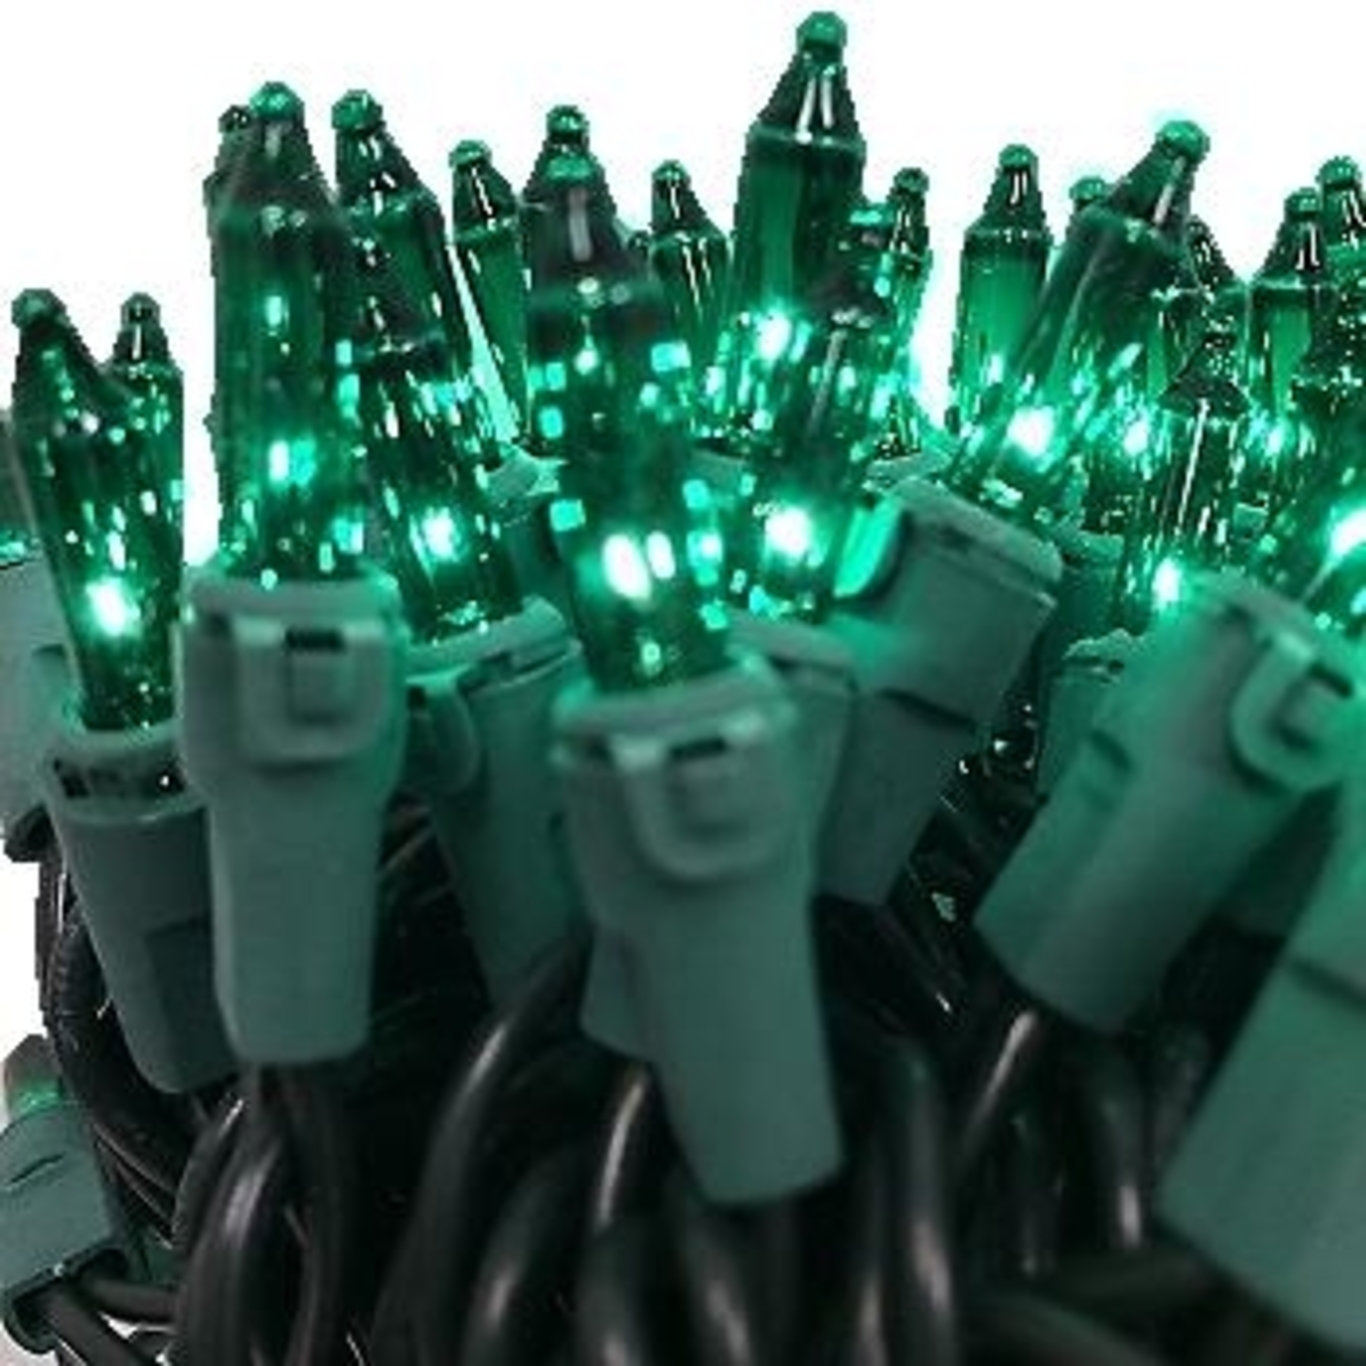 Incandescent Christmas Lights.Green Incandescent Christmas Lights Case 2400 Bulbs